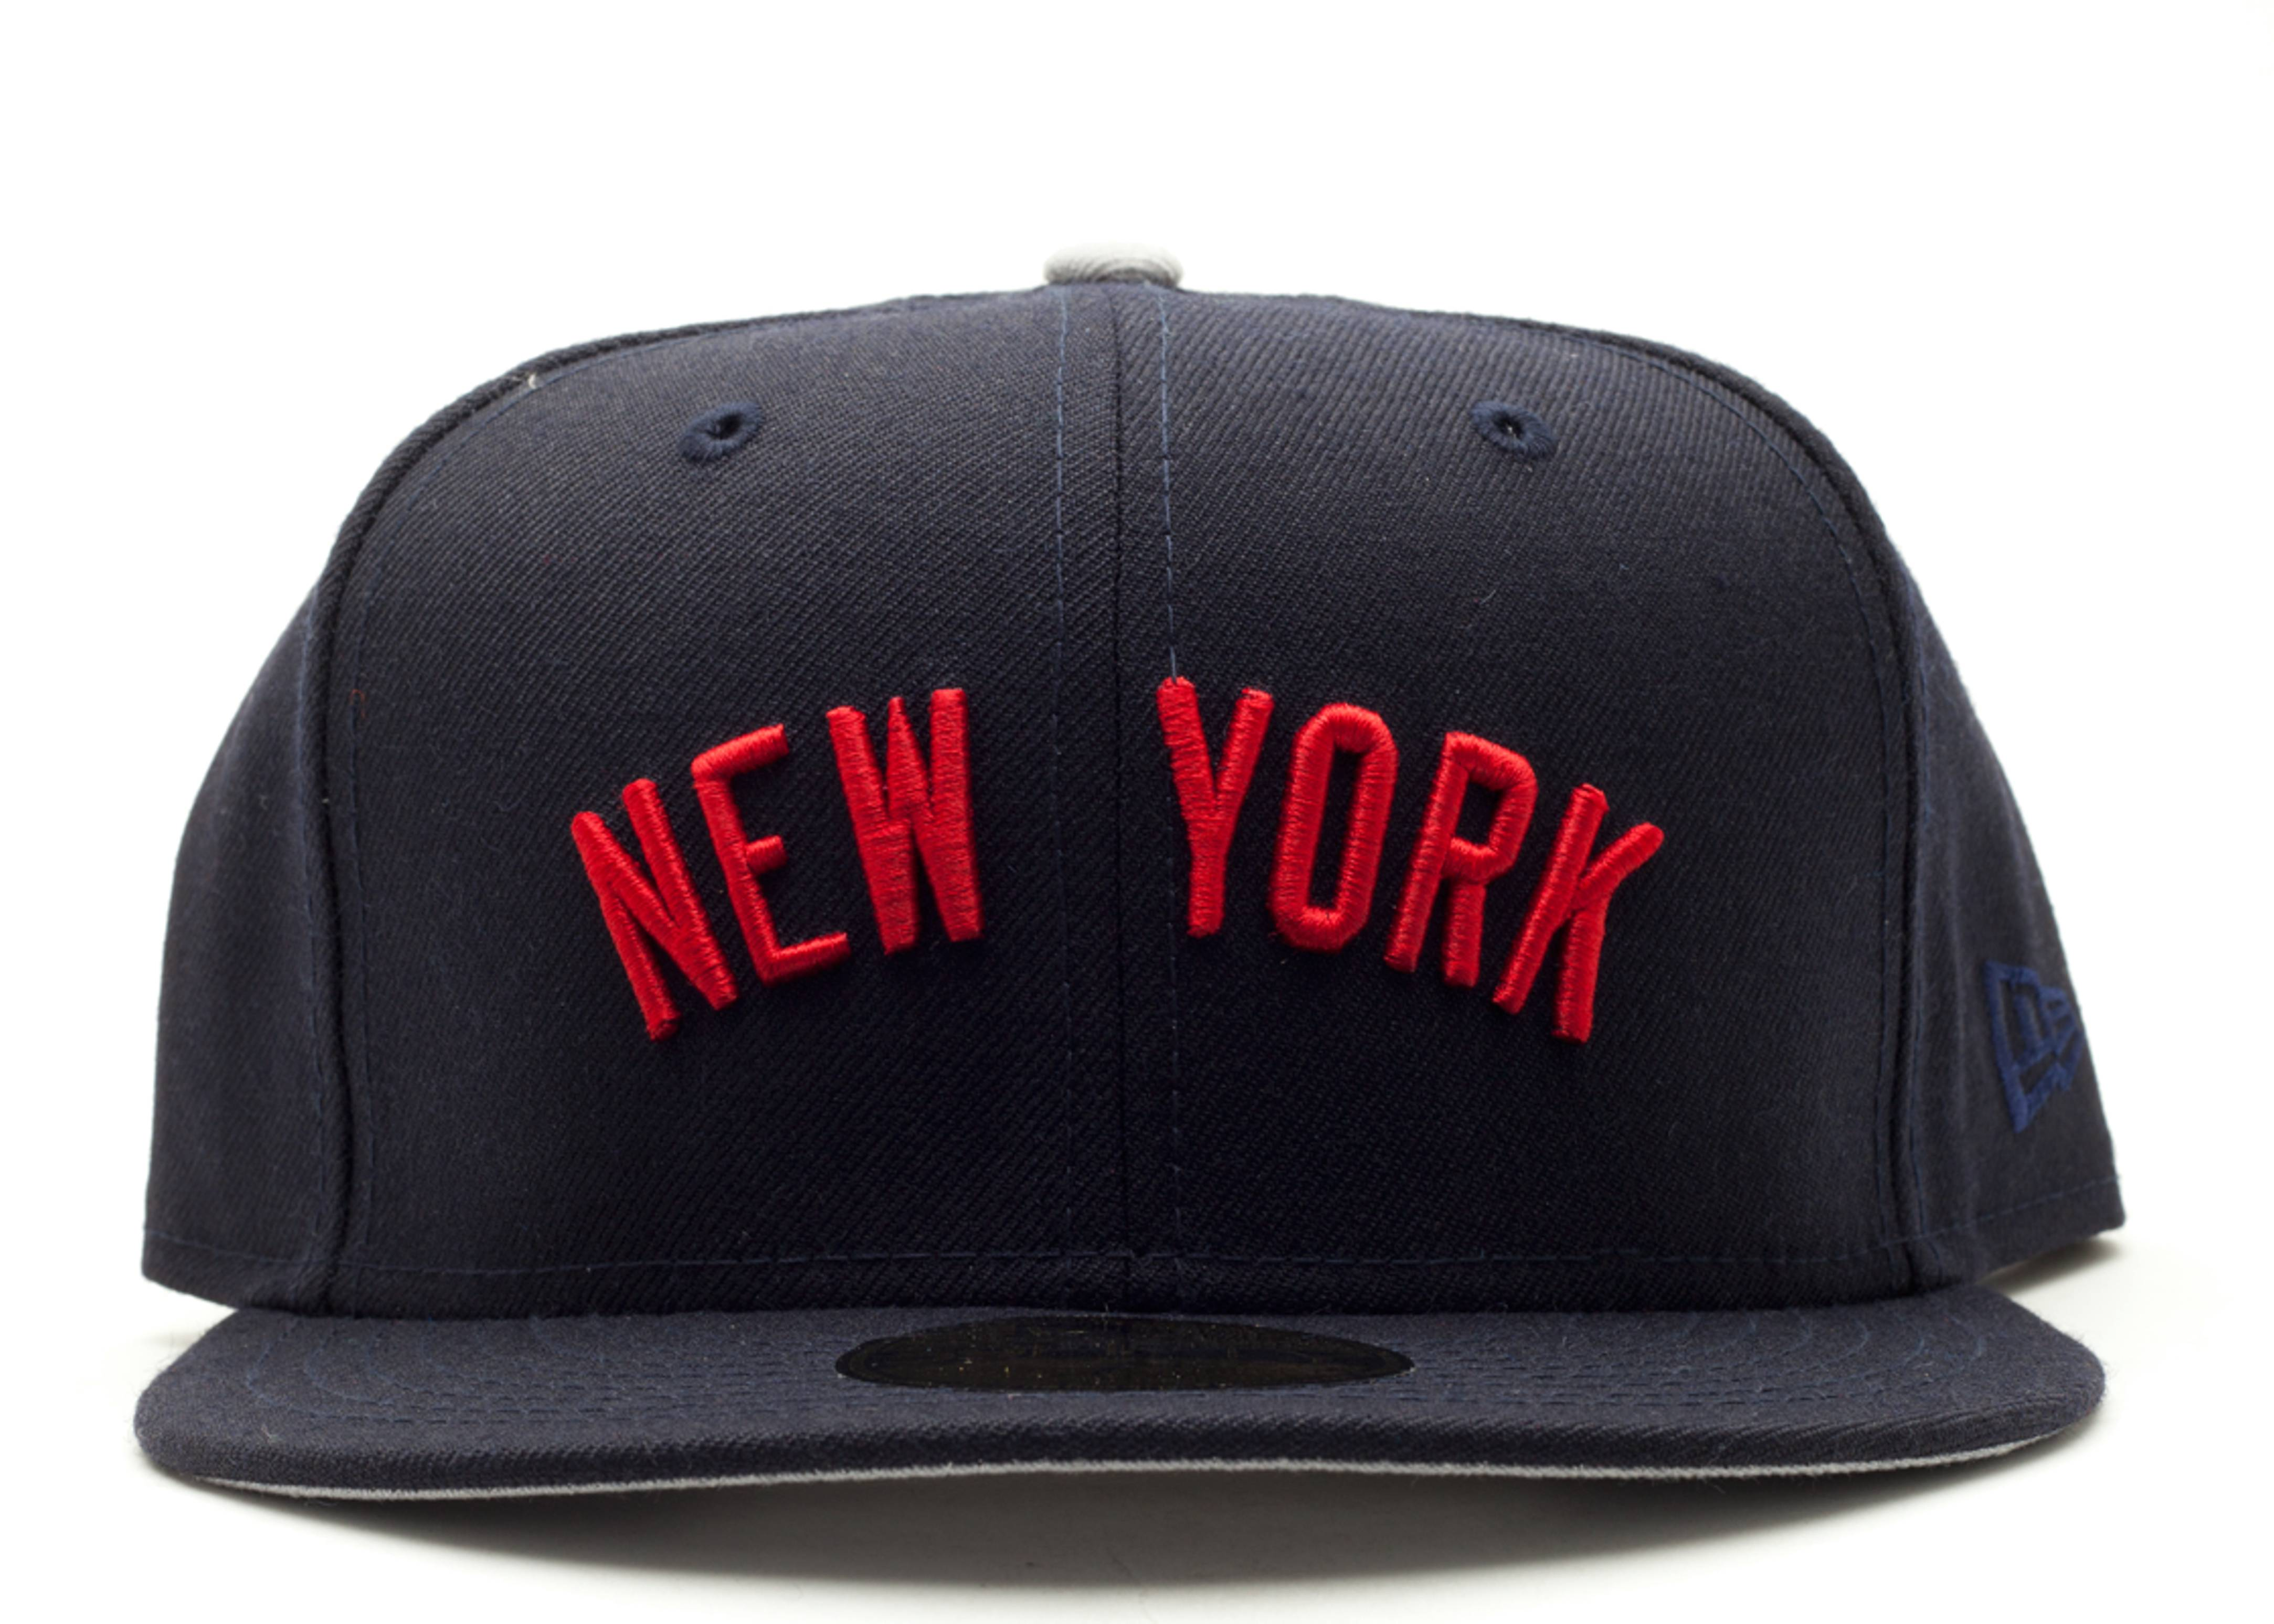 new york black yankees fitted